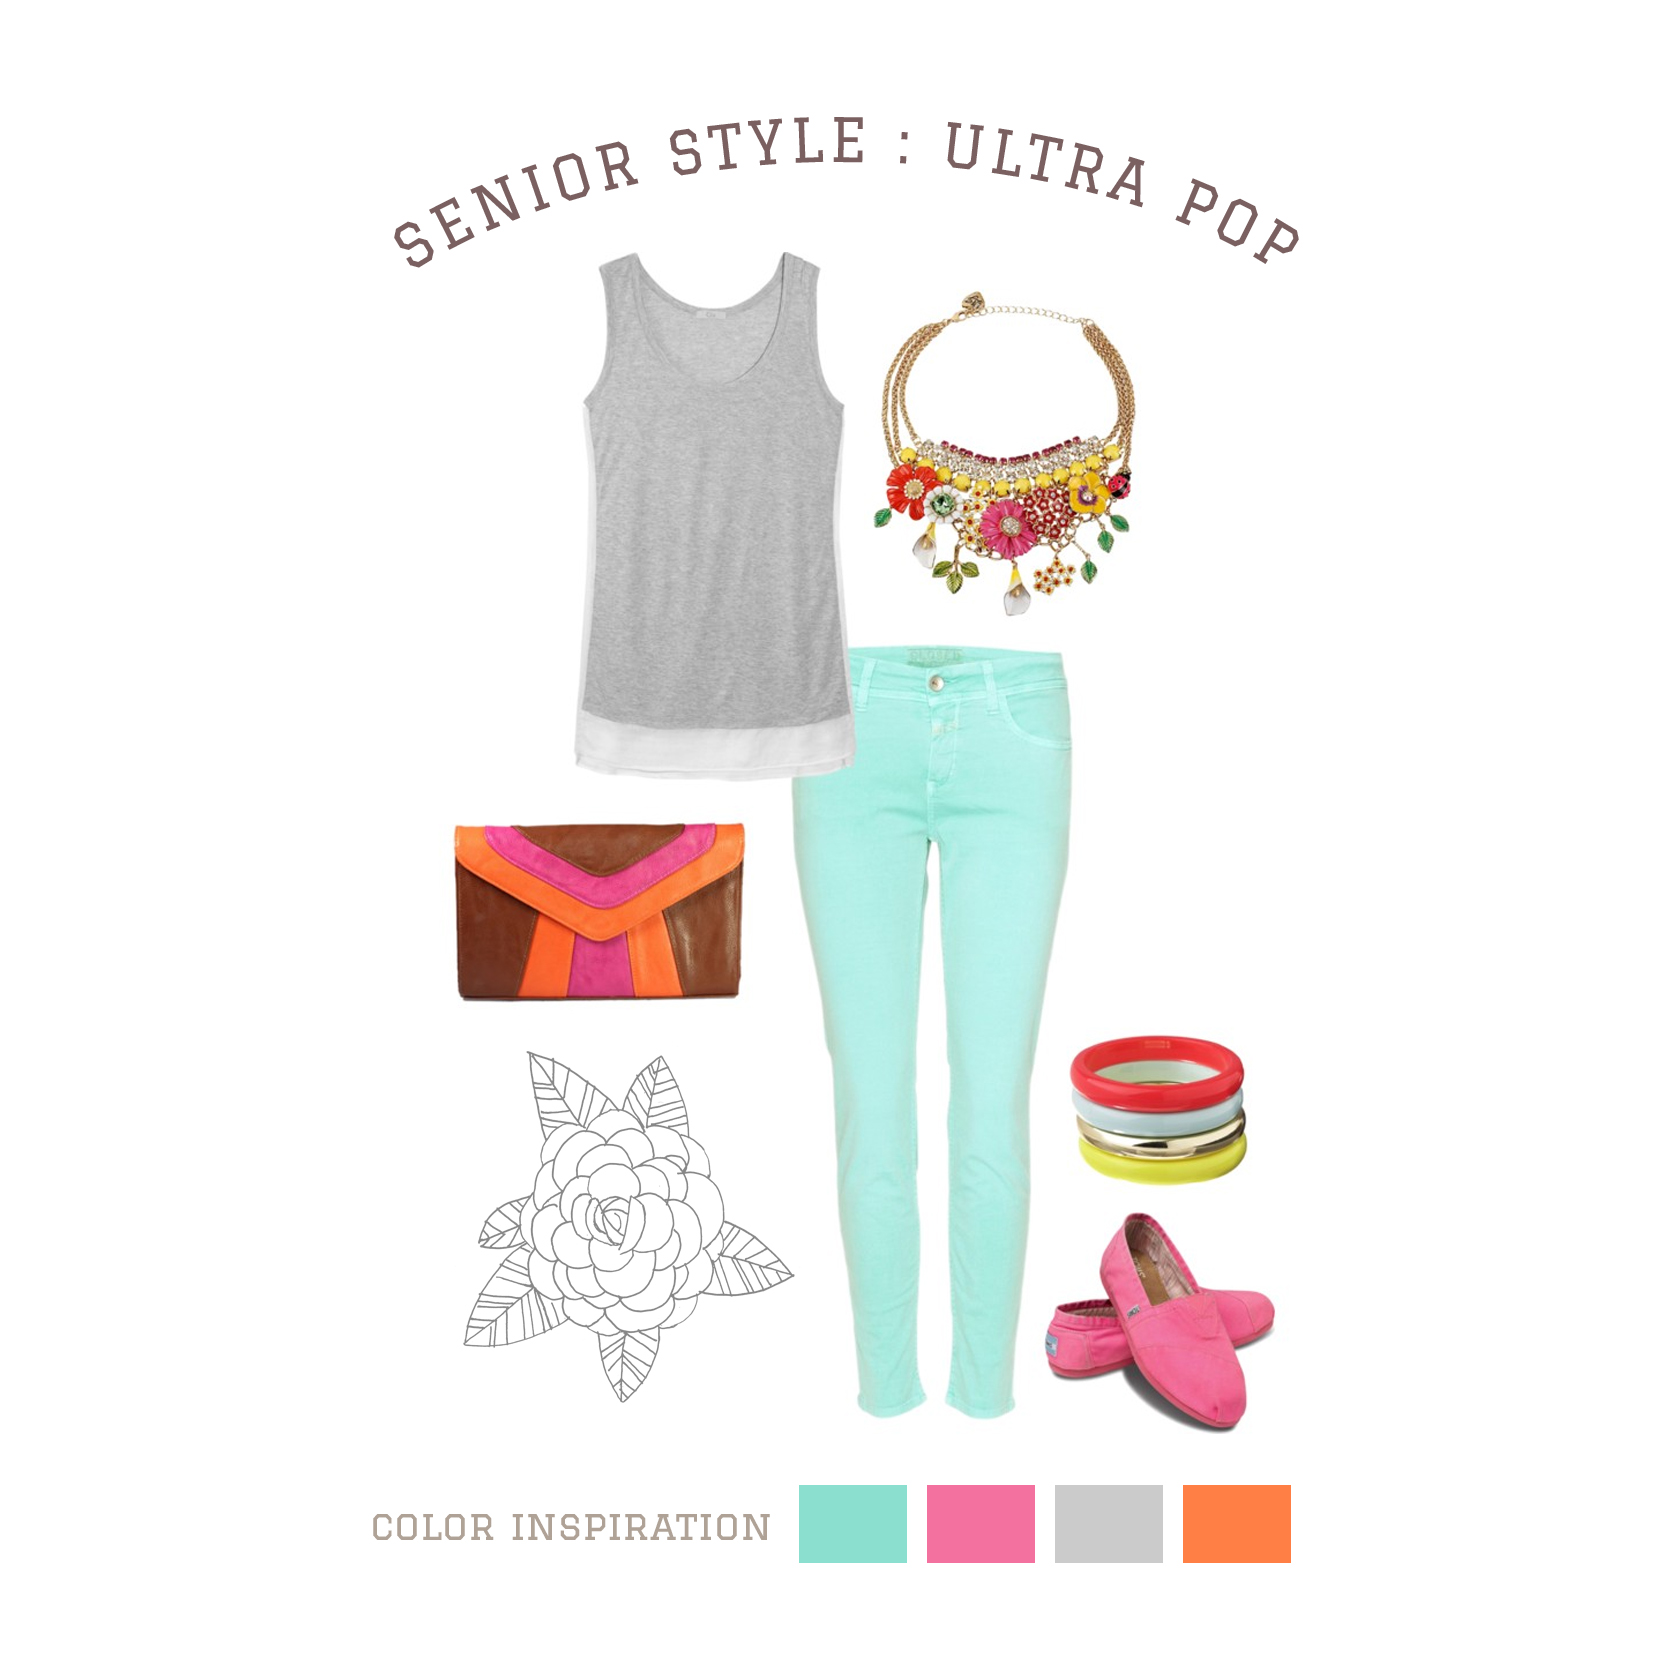 Ultra Pop A mix of quiet and loud makes this outfit a standout. Splashes of incredible, intense color createstrong focal points against soft, neutral colors. Start with solid color pants and a grey tank thenadd color and personality with shoes and accessories! A great look for indoors or outdoors.